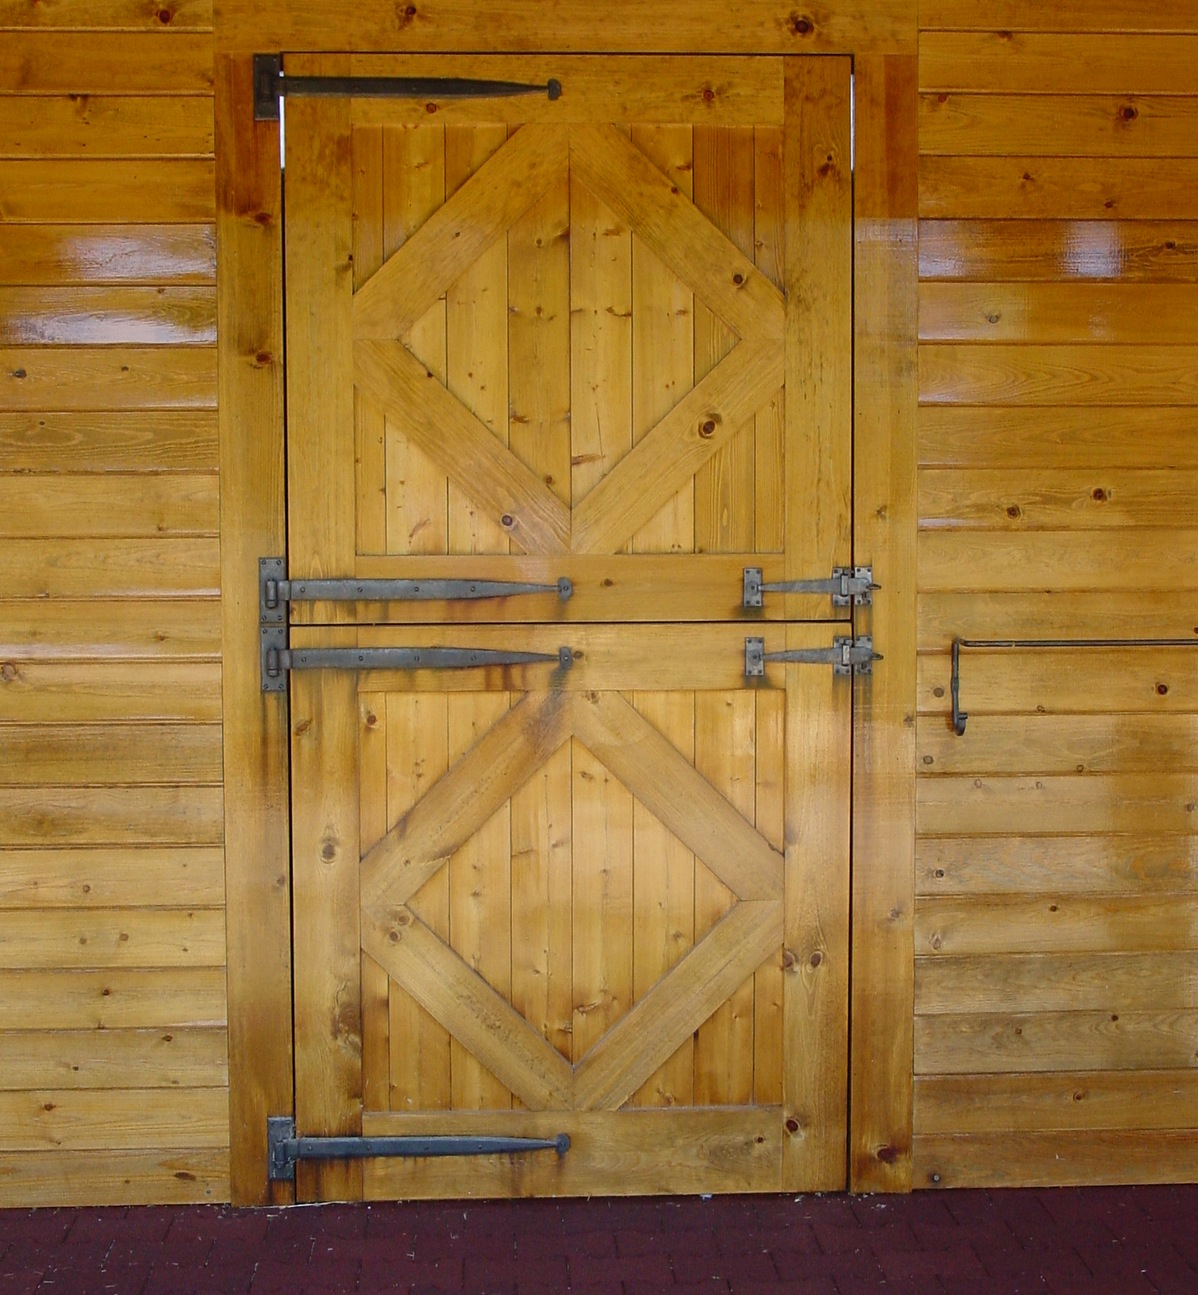 "Both the barn and stall dutch doors are custom built pine with custom designed,  h  and-forged iron , period strap hinges and one of a kind latches and blanket rails. The interlocking rubber aisle way pavers are 1-3/4"" thick."